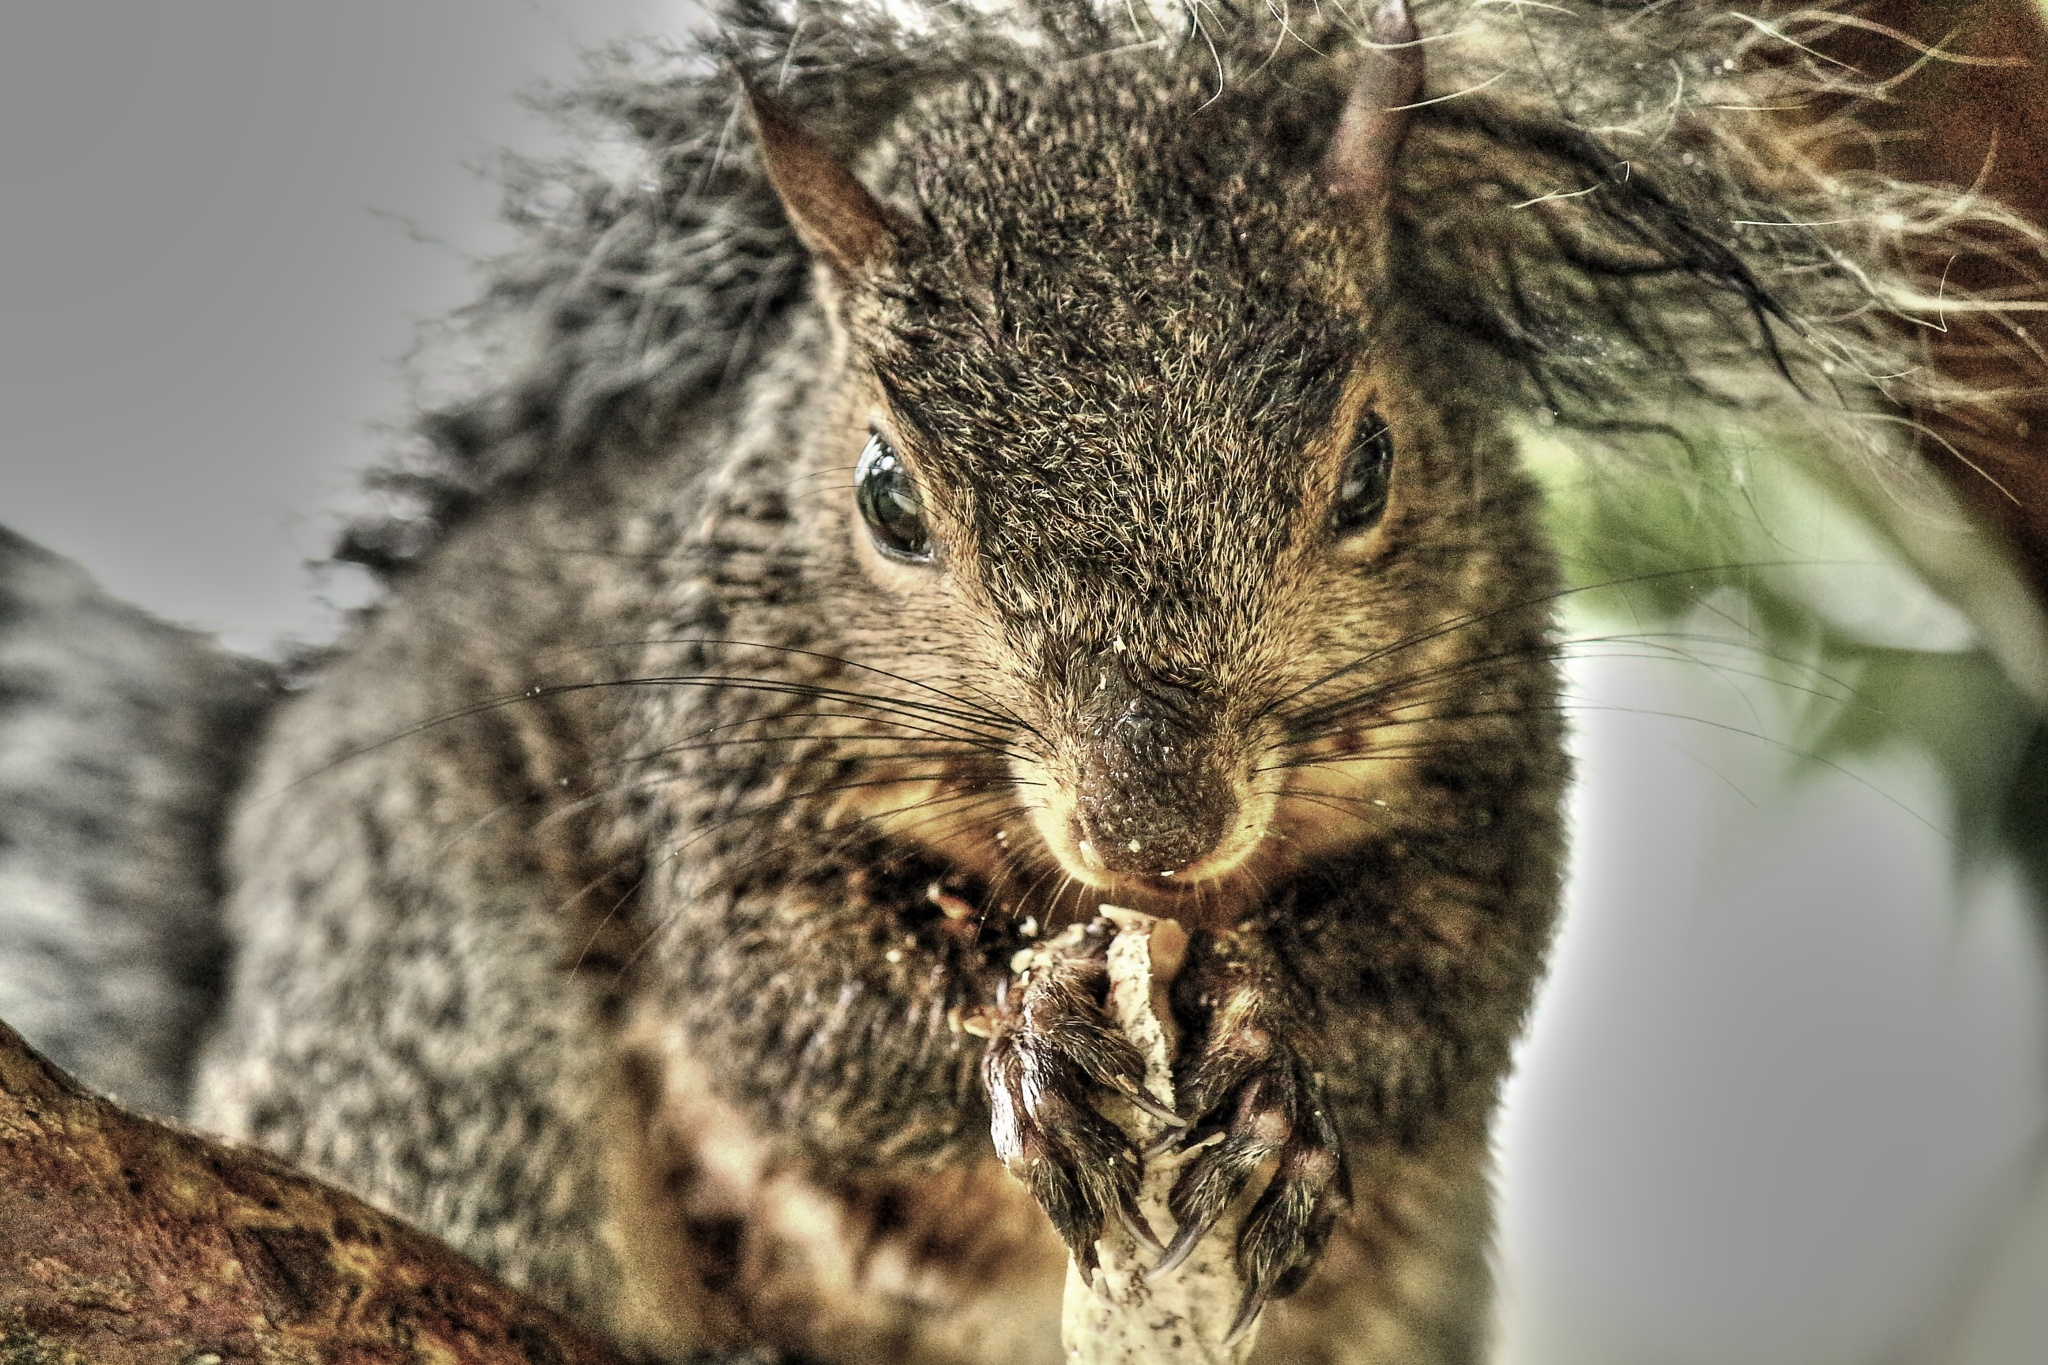 Hurricane rains and a happy squirrel by Clark L. Roberts